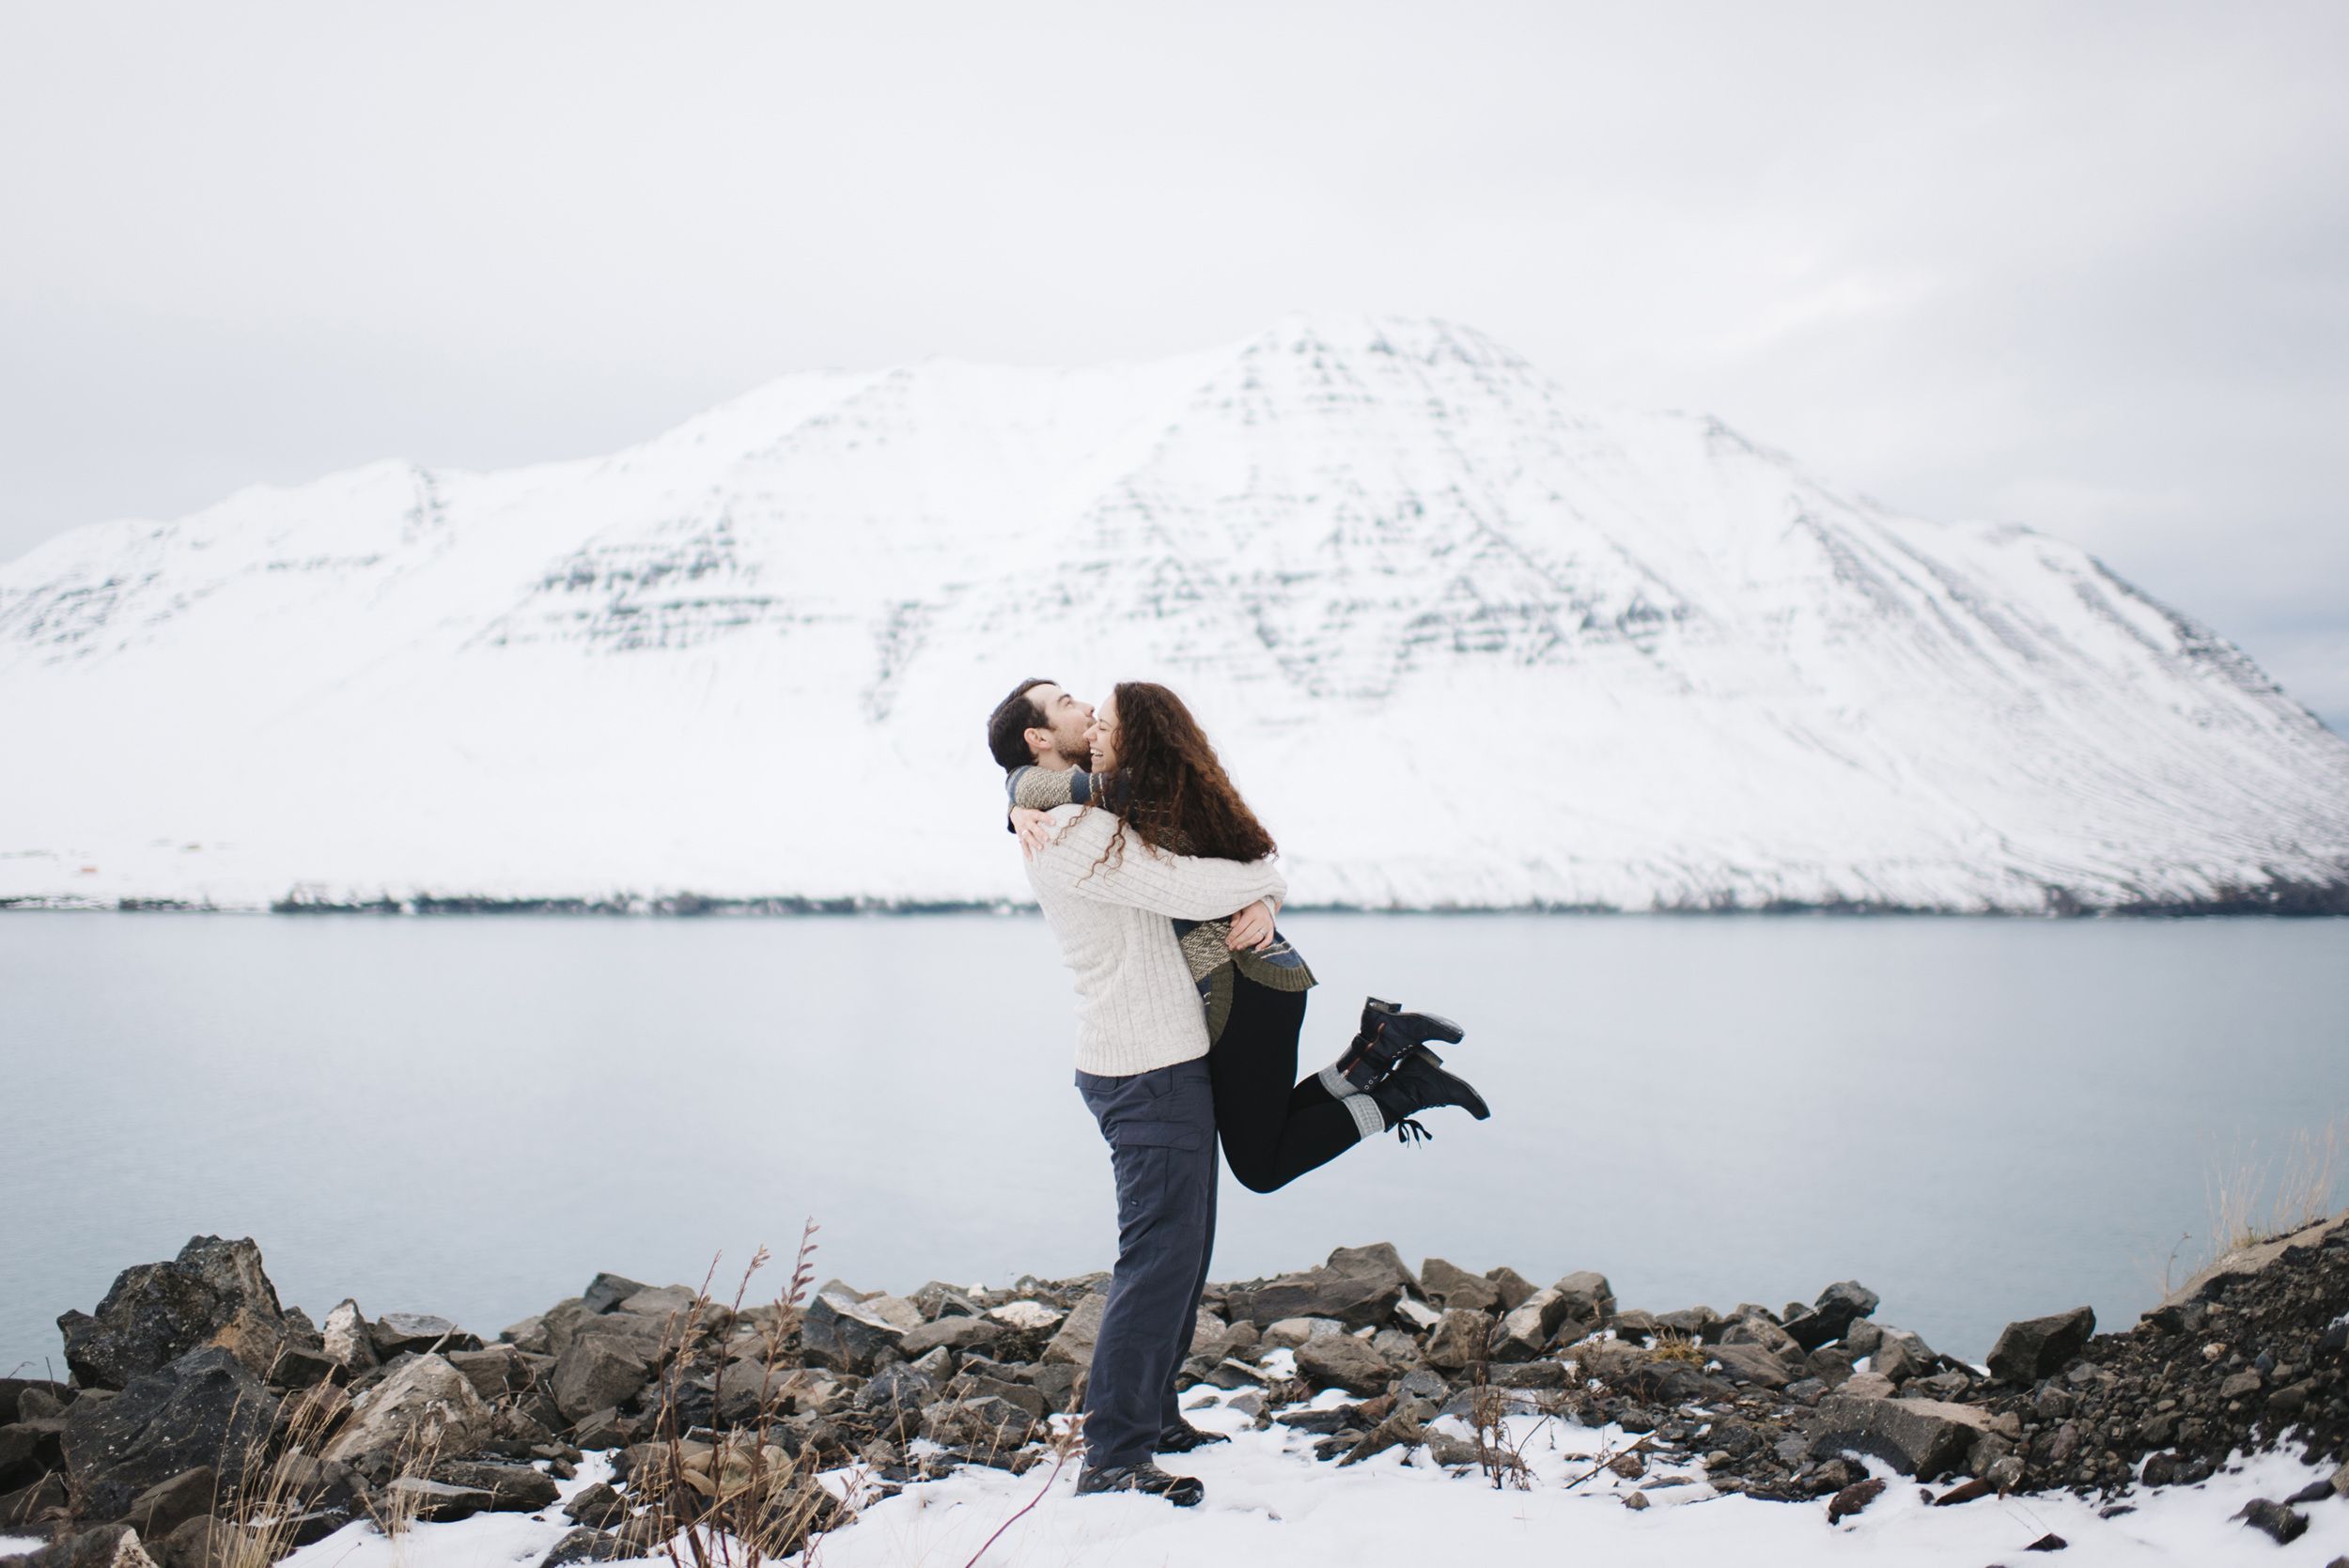 Iceland Adventure Engagement Photographer71.JPG